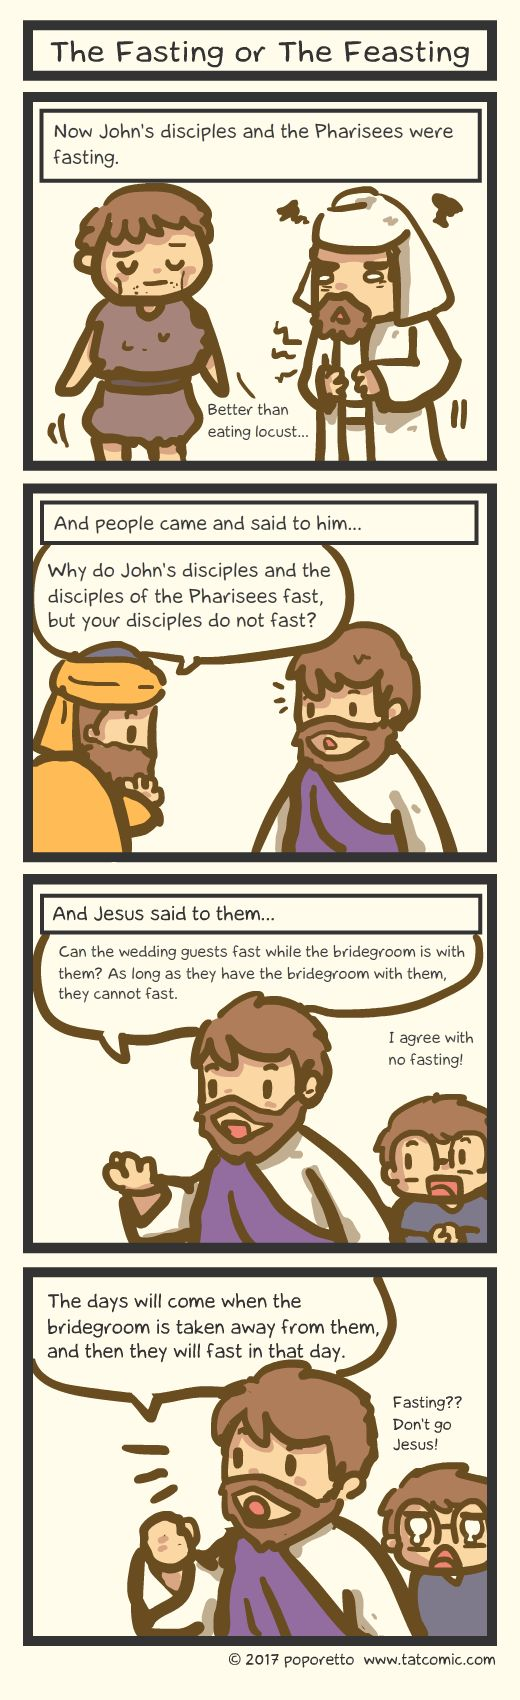 Gospel of Mark comic Jesus telling the people that his disciples doesn't feat because he is the christ